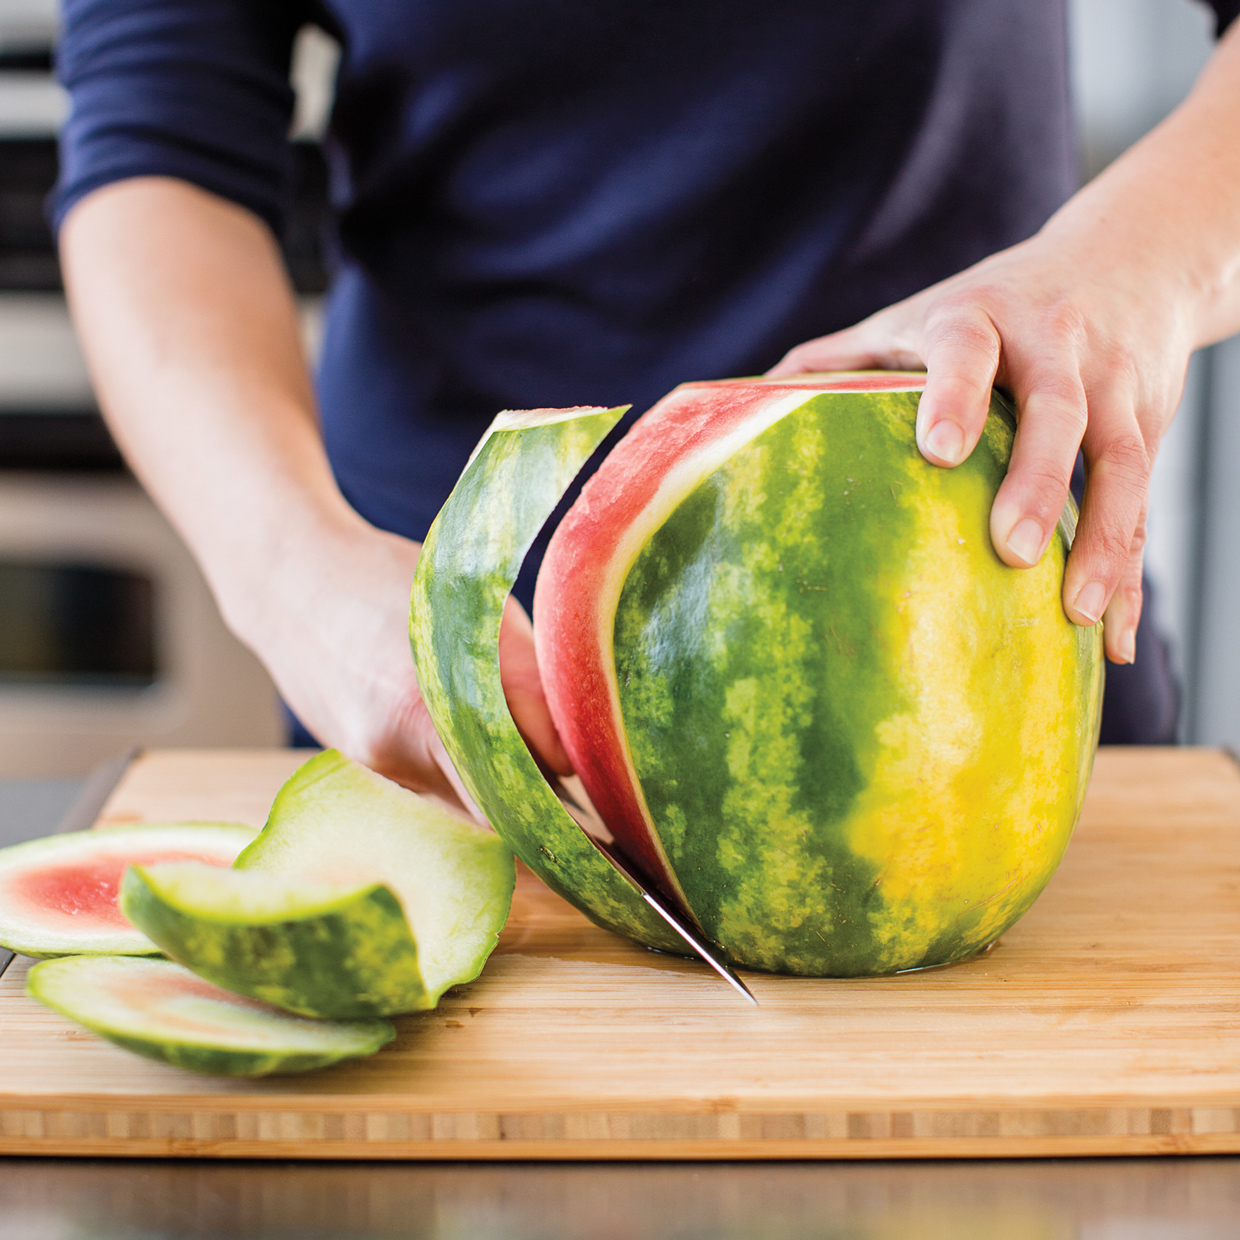 KitchenSkills_How_to_cut_a_melon-19